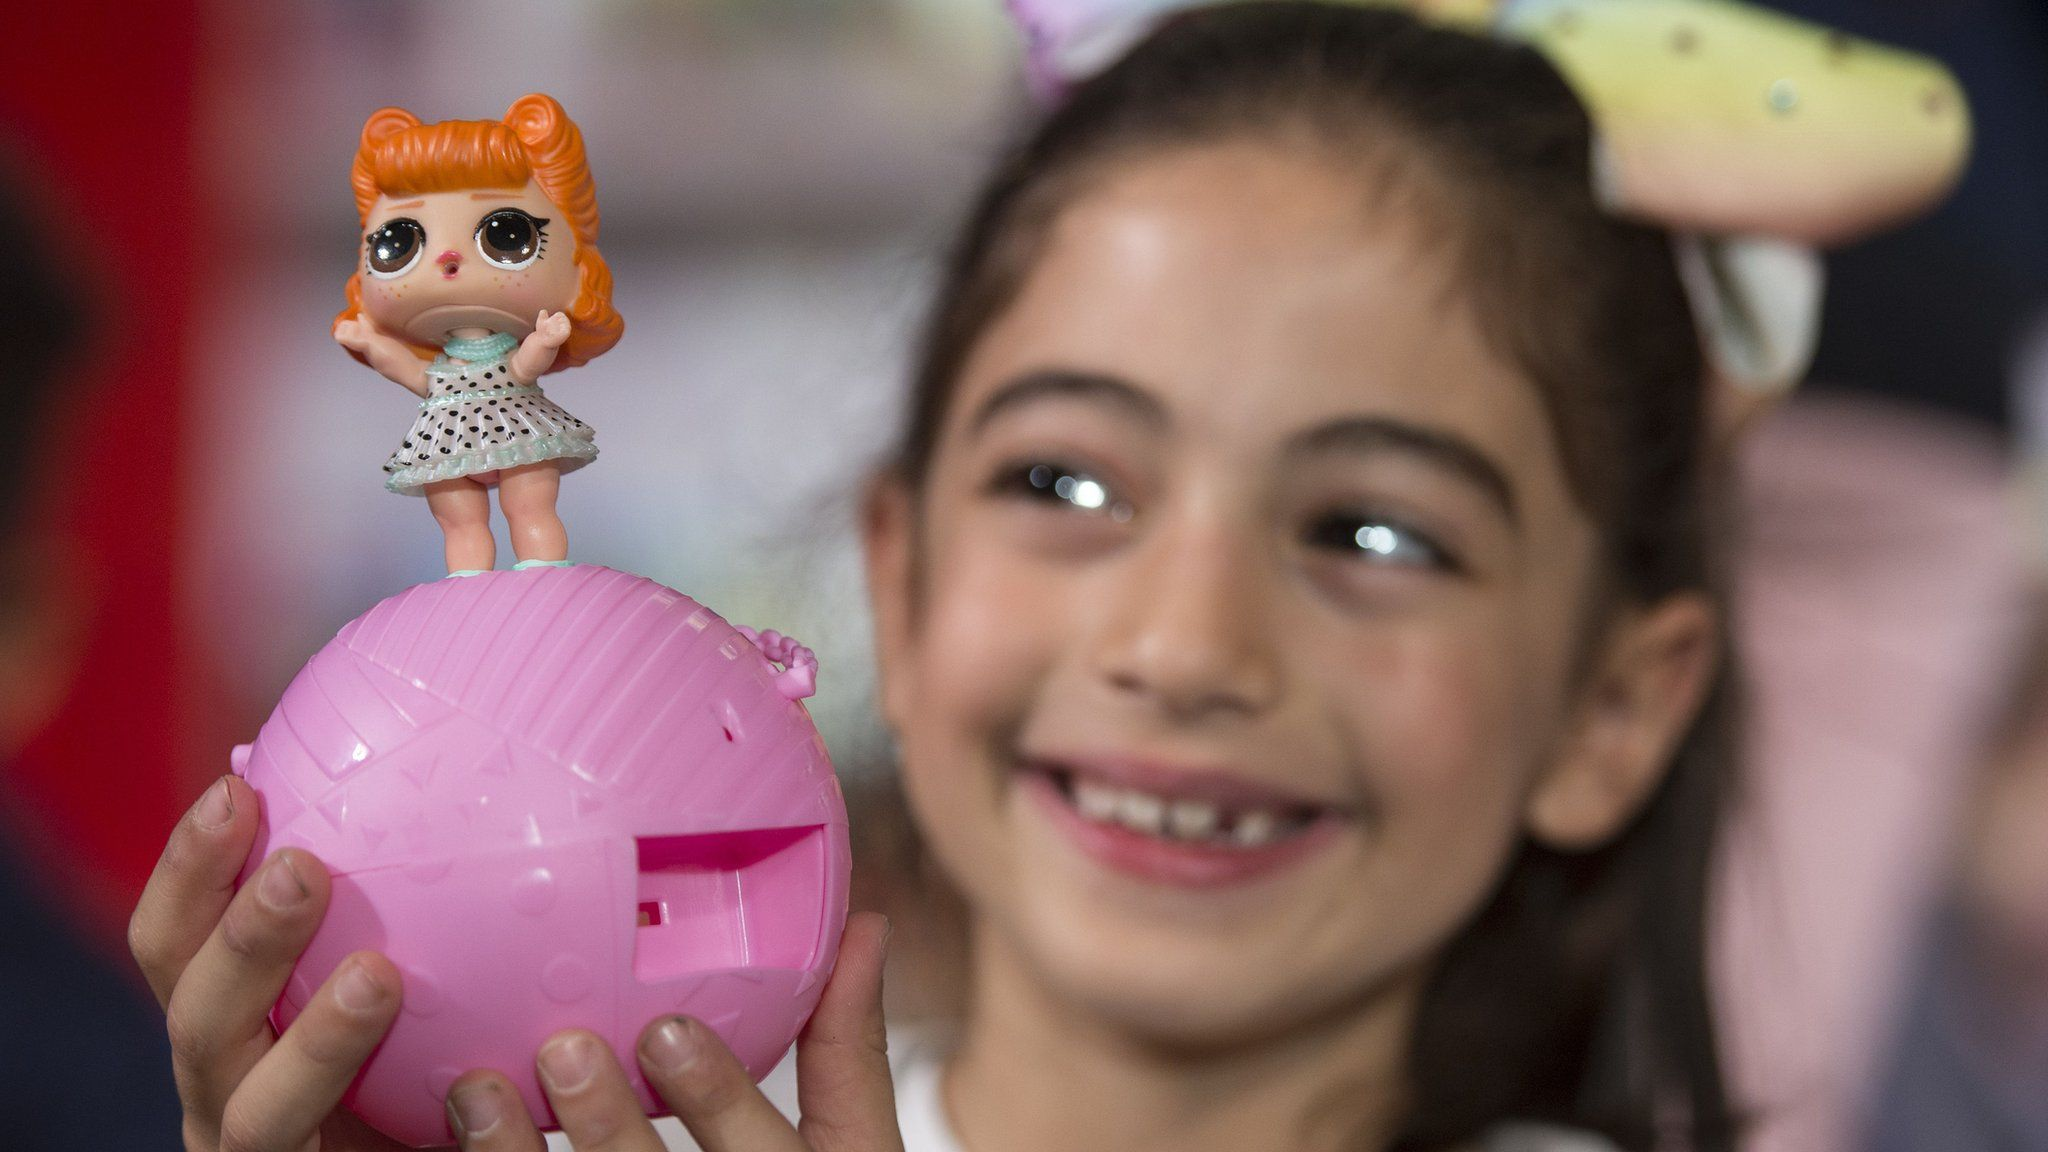 Natasa Neocleous, 7, plays with the LOL Surprise Series 2 toy